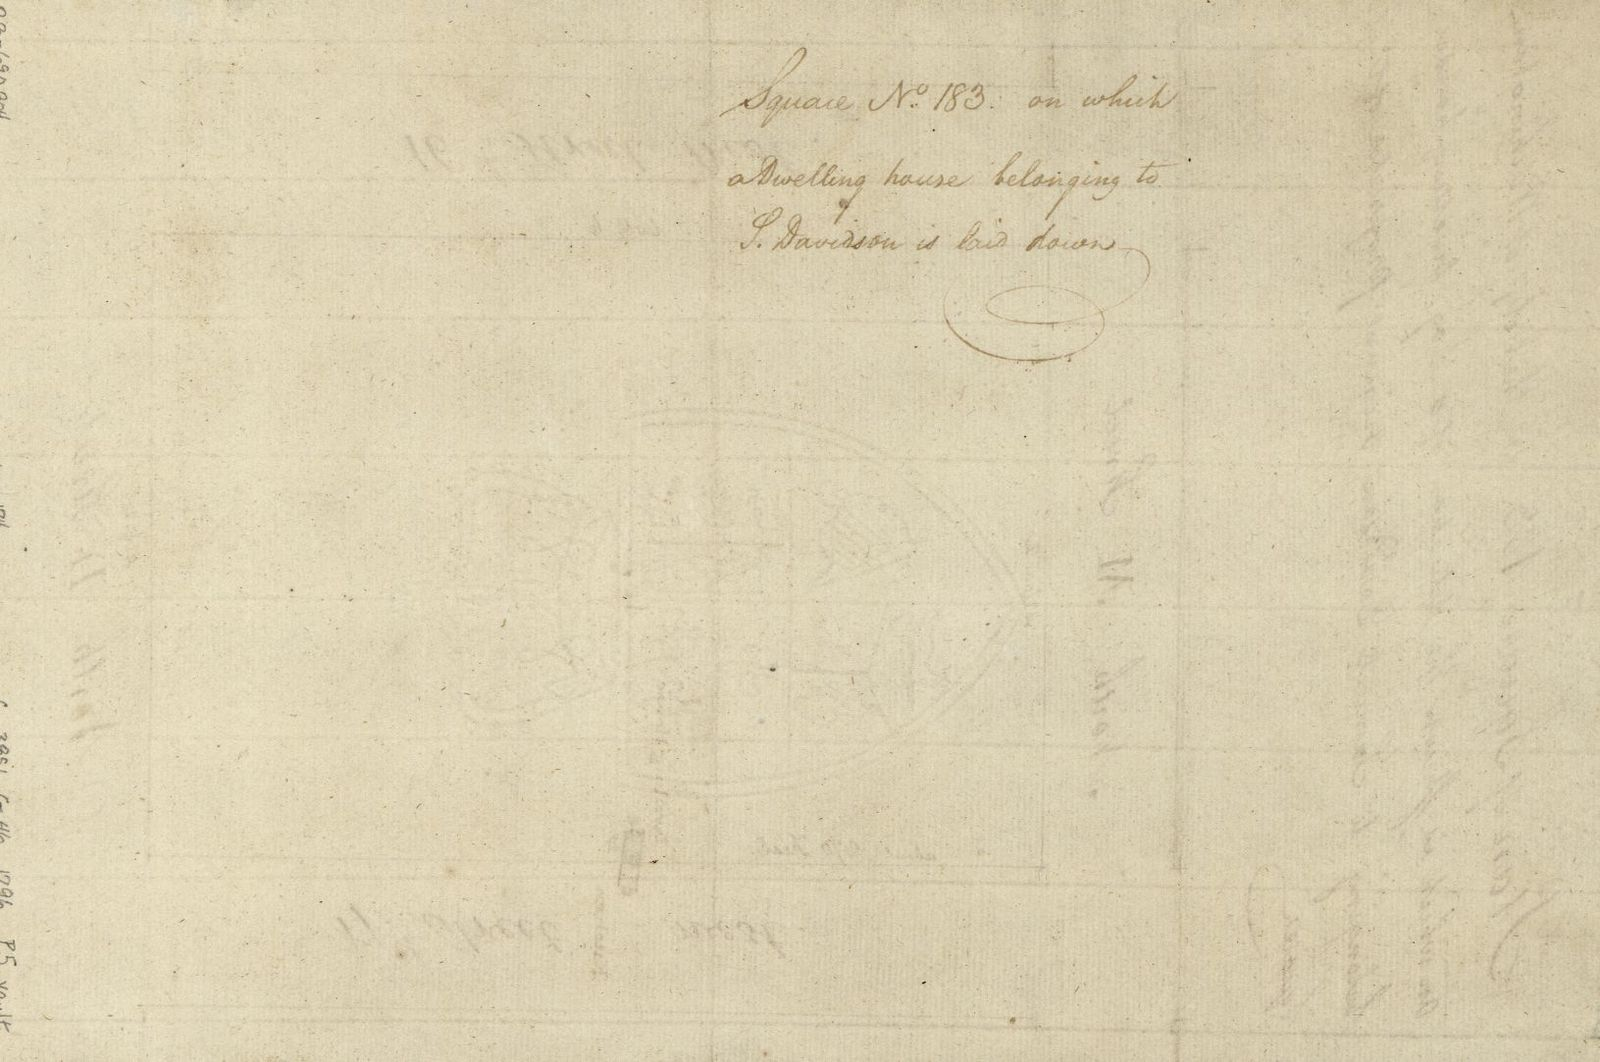 Plan of square 183 in the city of Washington on which is shewn the situation of a log dwelling house belonging to Samuel Davidson, original proprietor of the square.